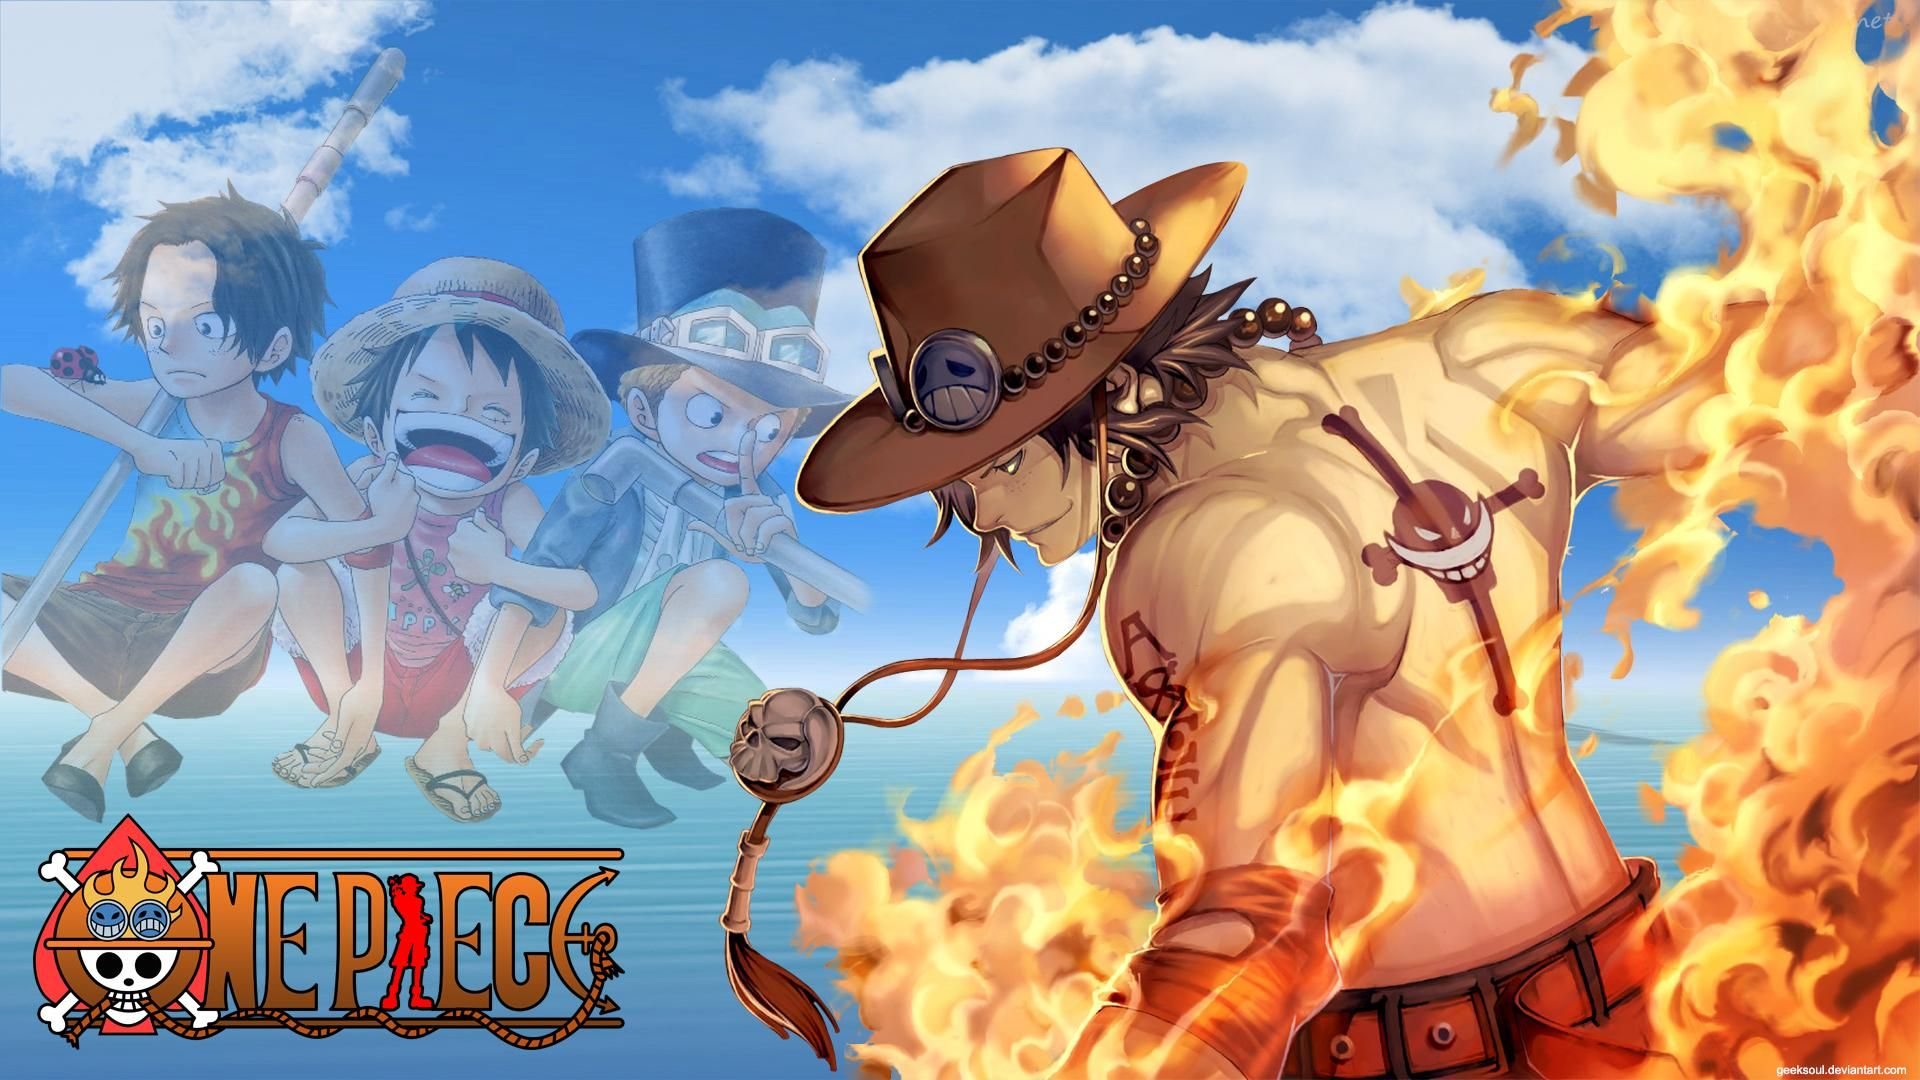 Ace One Piece One Piece Ace Ace And Luffy Anime Trends for ultra hd one piece ace